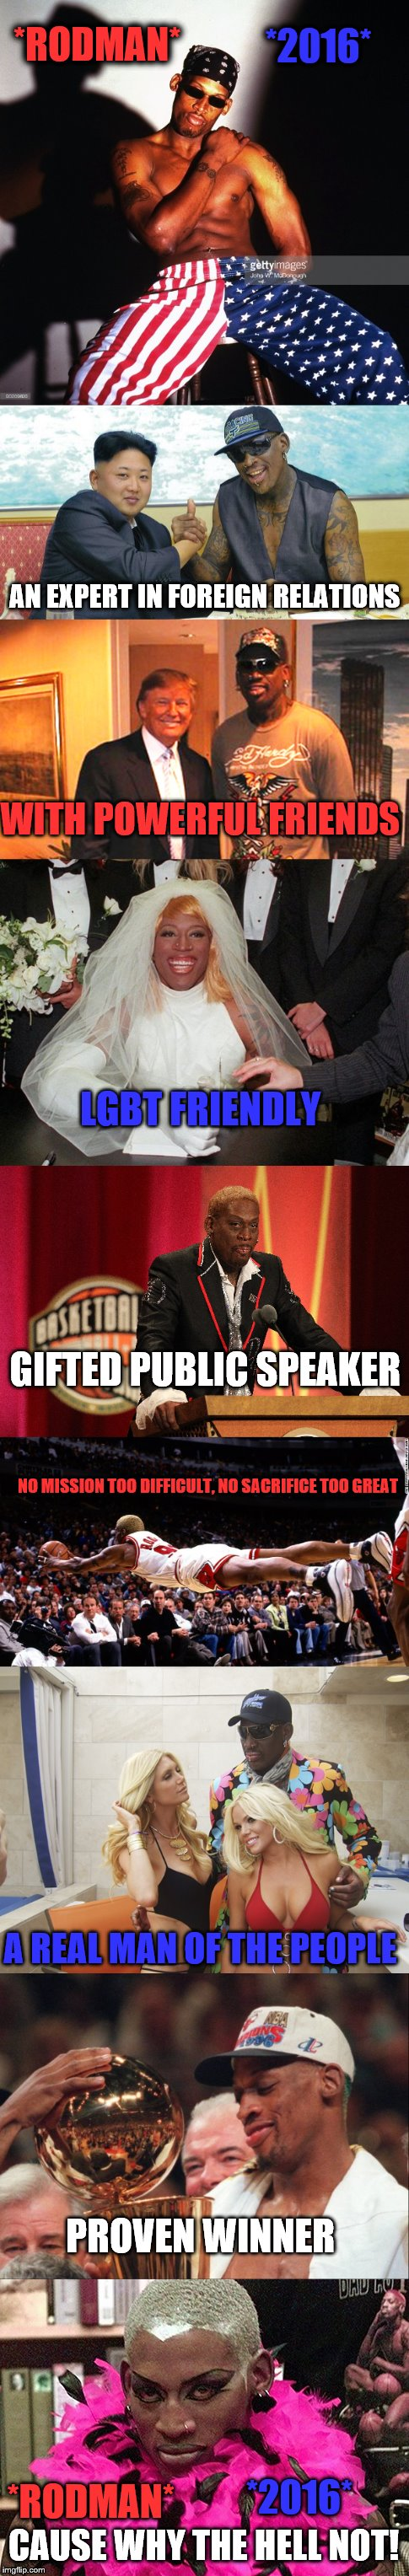 *RODMAN* *2016* AN EXPERT IN FOREIGN RELATIONS WITH POWERFUL FRIENDS LGBT FRIENDLY GIFTED PUBLIC SPEAKER NO MISSION TOO DIFFICULT, NO SACRIF | image tagged in dennis rodman,election,president | made w/ Imgflip meme maker